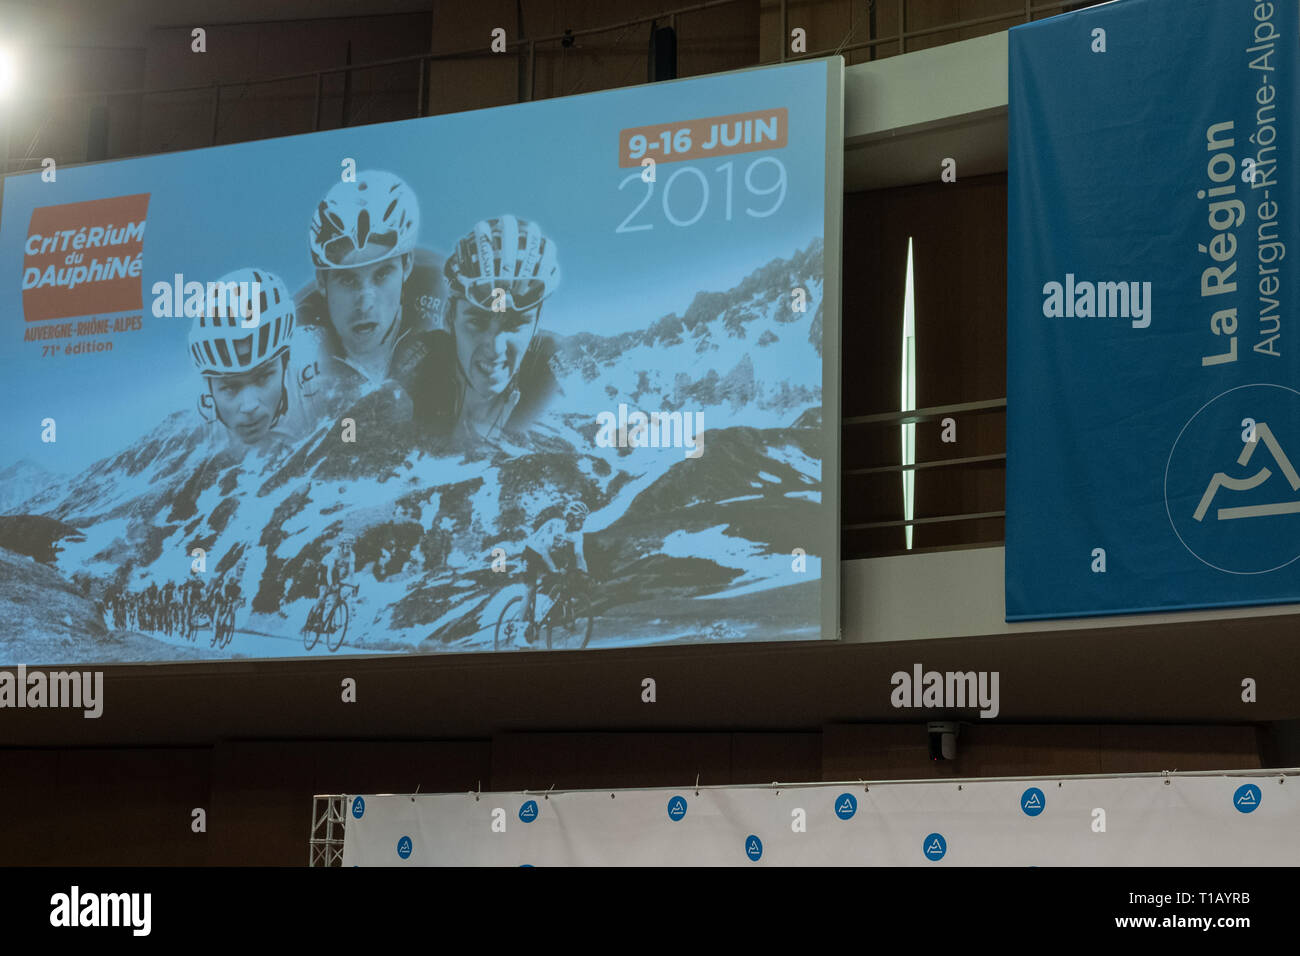 Lyon, France. 25th March, 2019. Poster of the 71st edition of Critérium du Dauphiné (from 09 to 16 June 2019) Credit: FRANCK CHAPOLARD/Alamy Live News Stock Photo